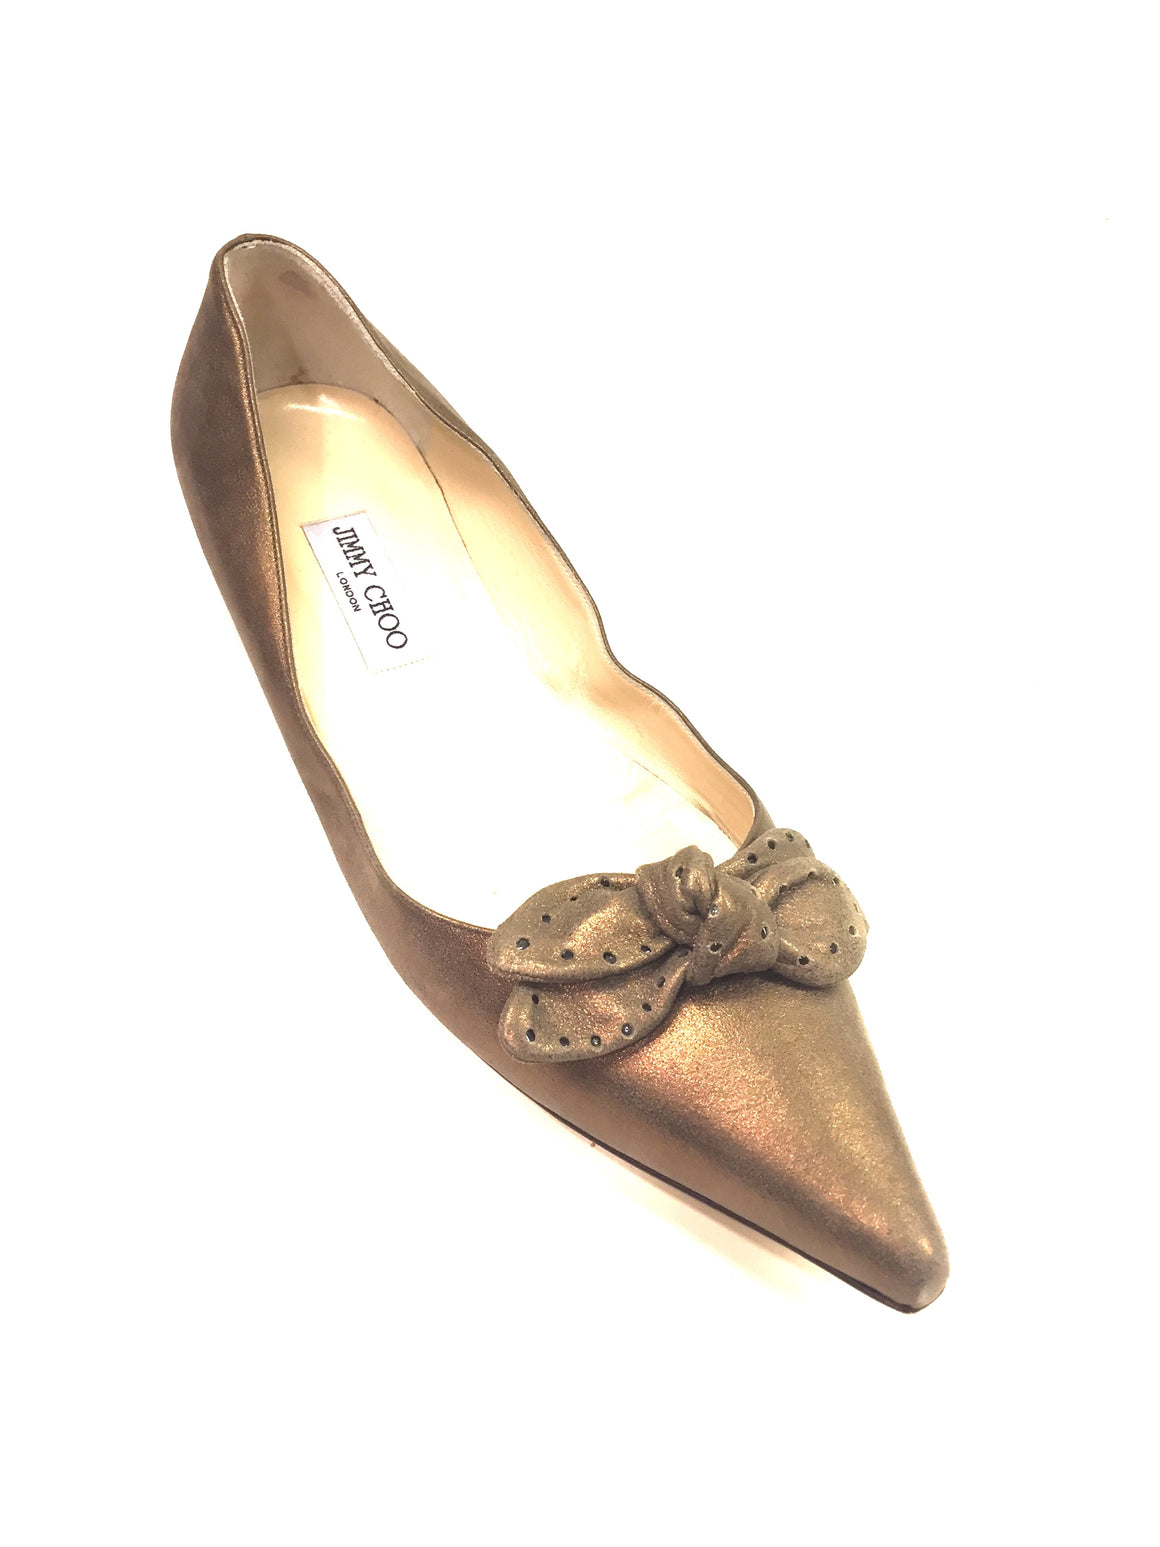 JIMMY CHOO Bronze Brushed Suede Pointed-Toe Bow Accent Flats Shoes Sz42